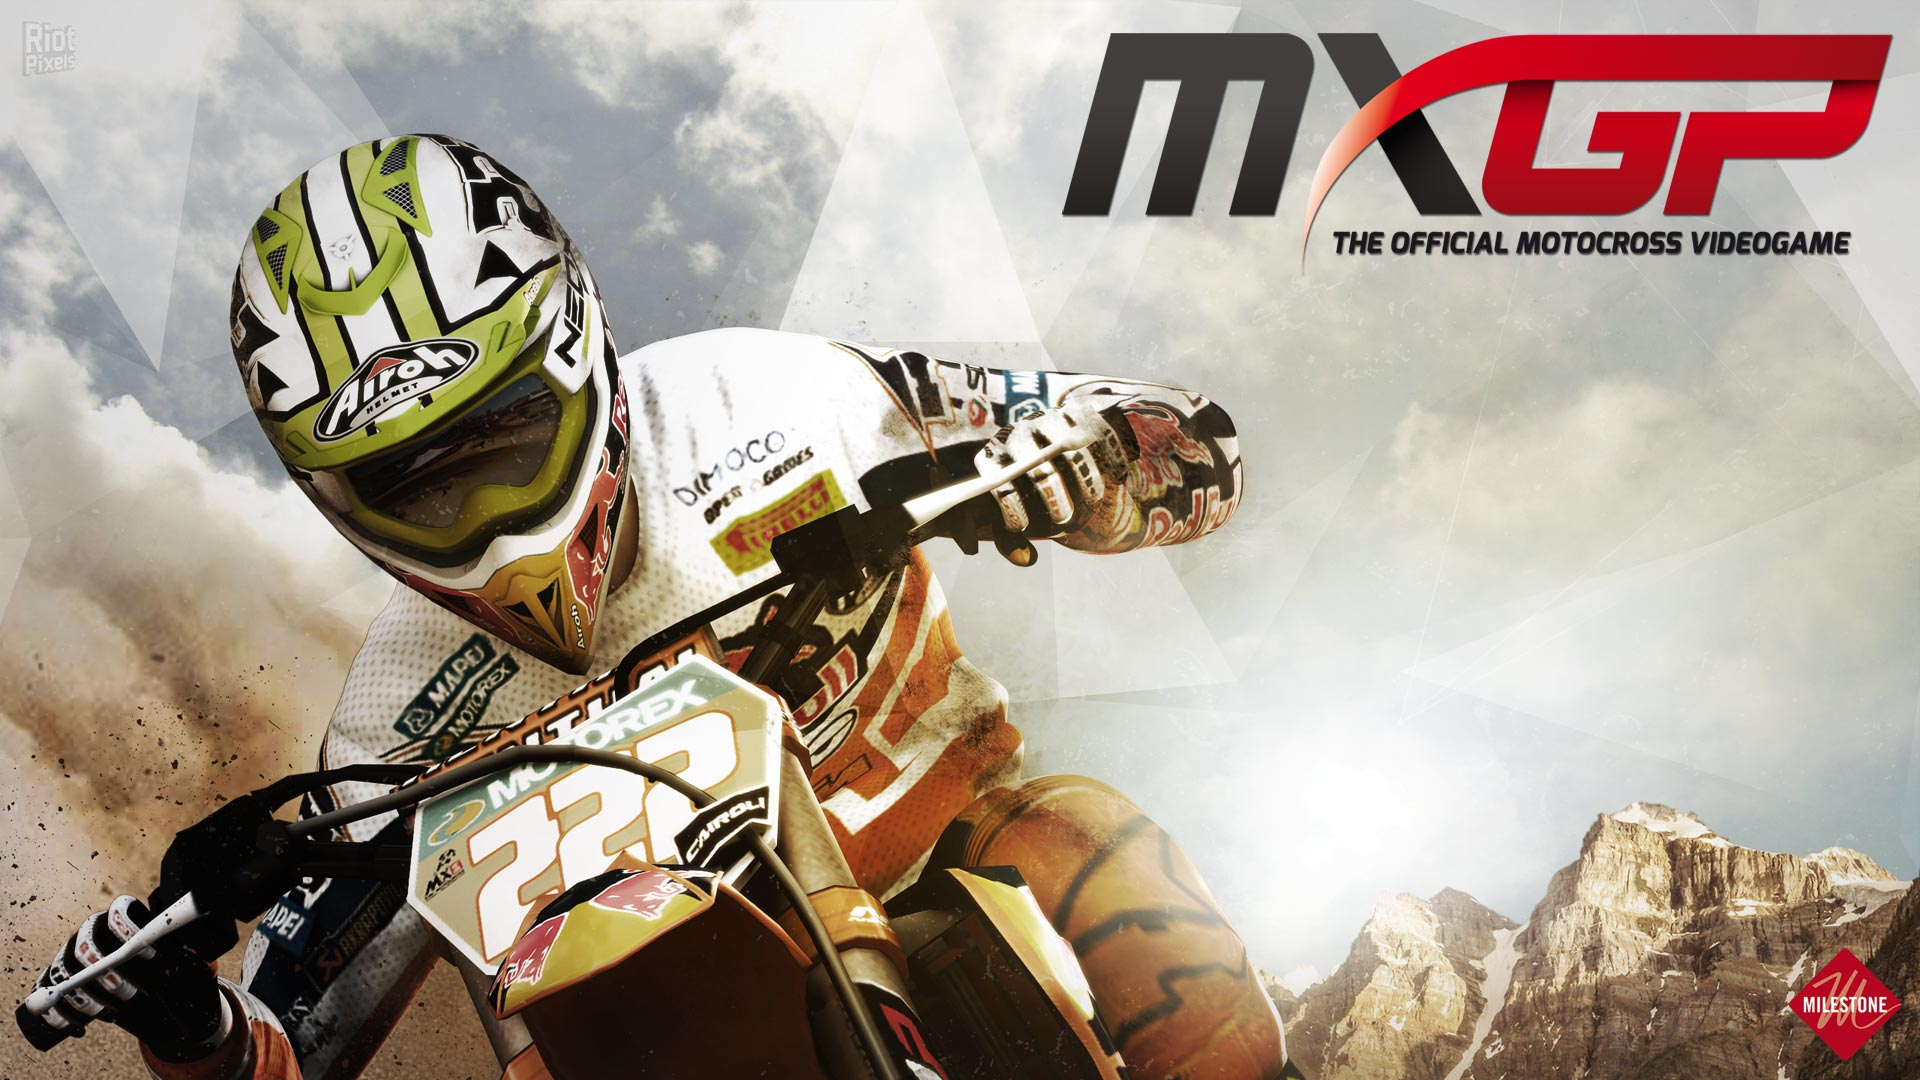 Mxgp-the-Official-Motocross-Videogame